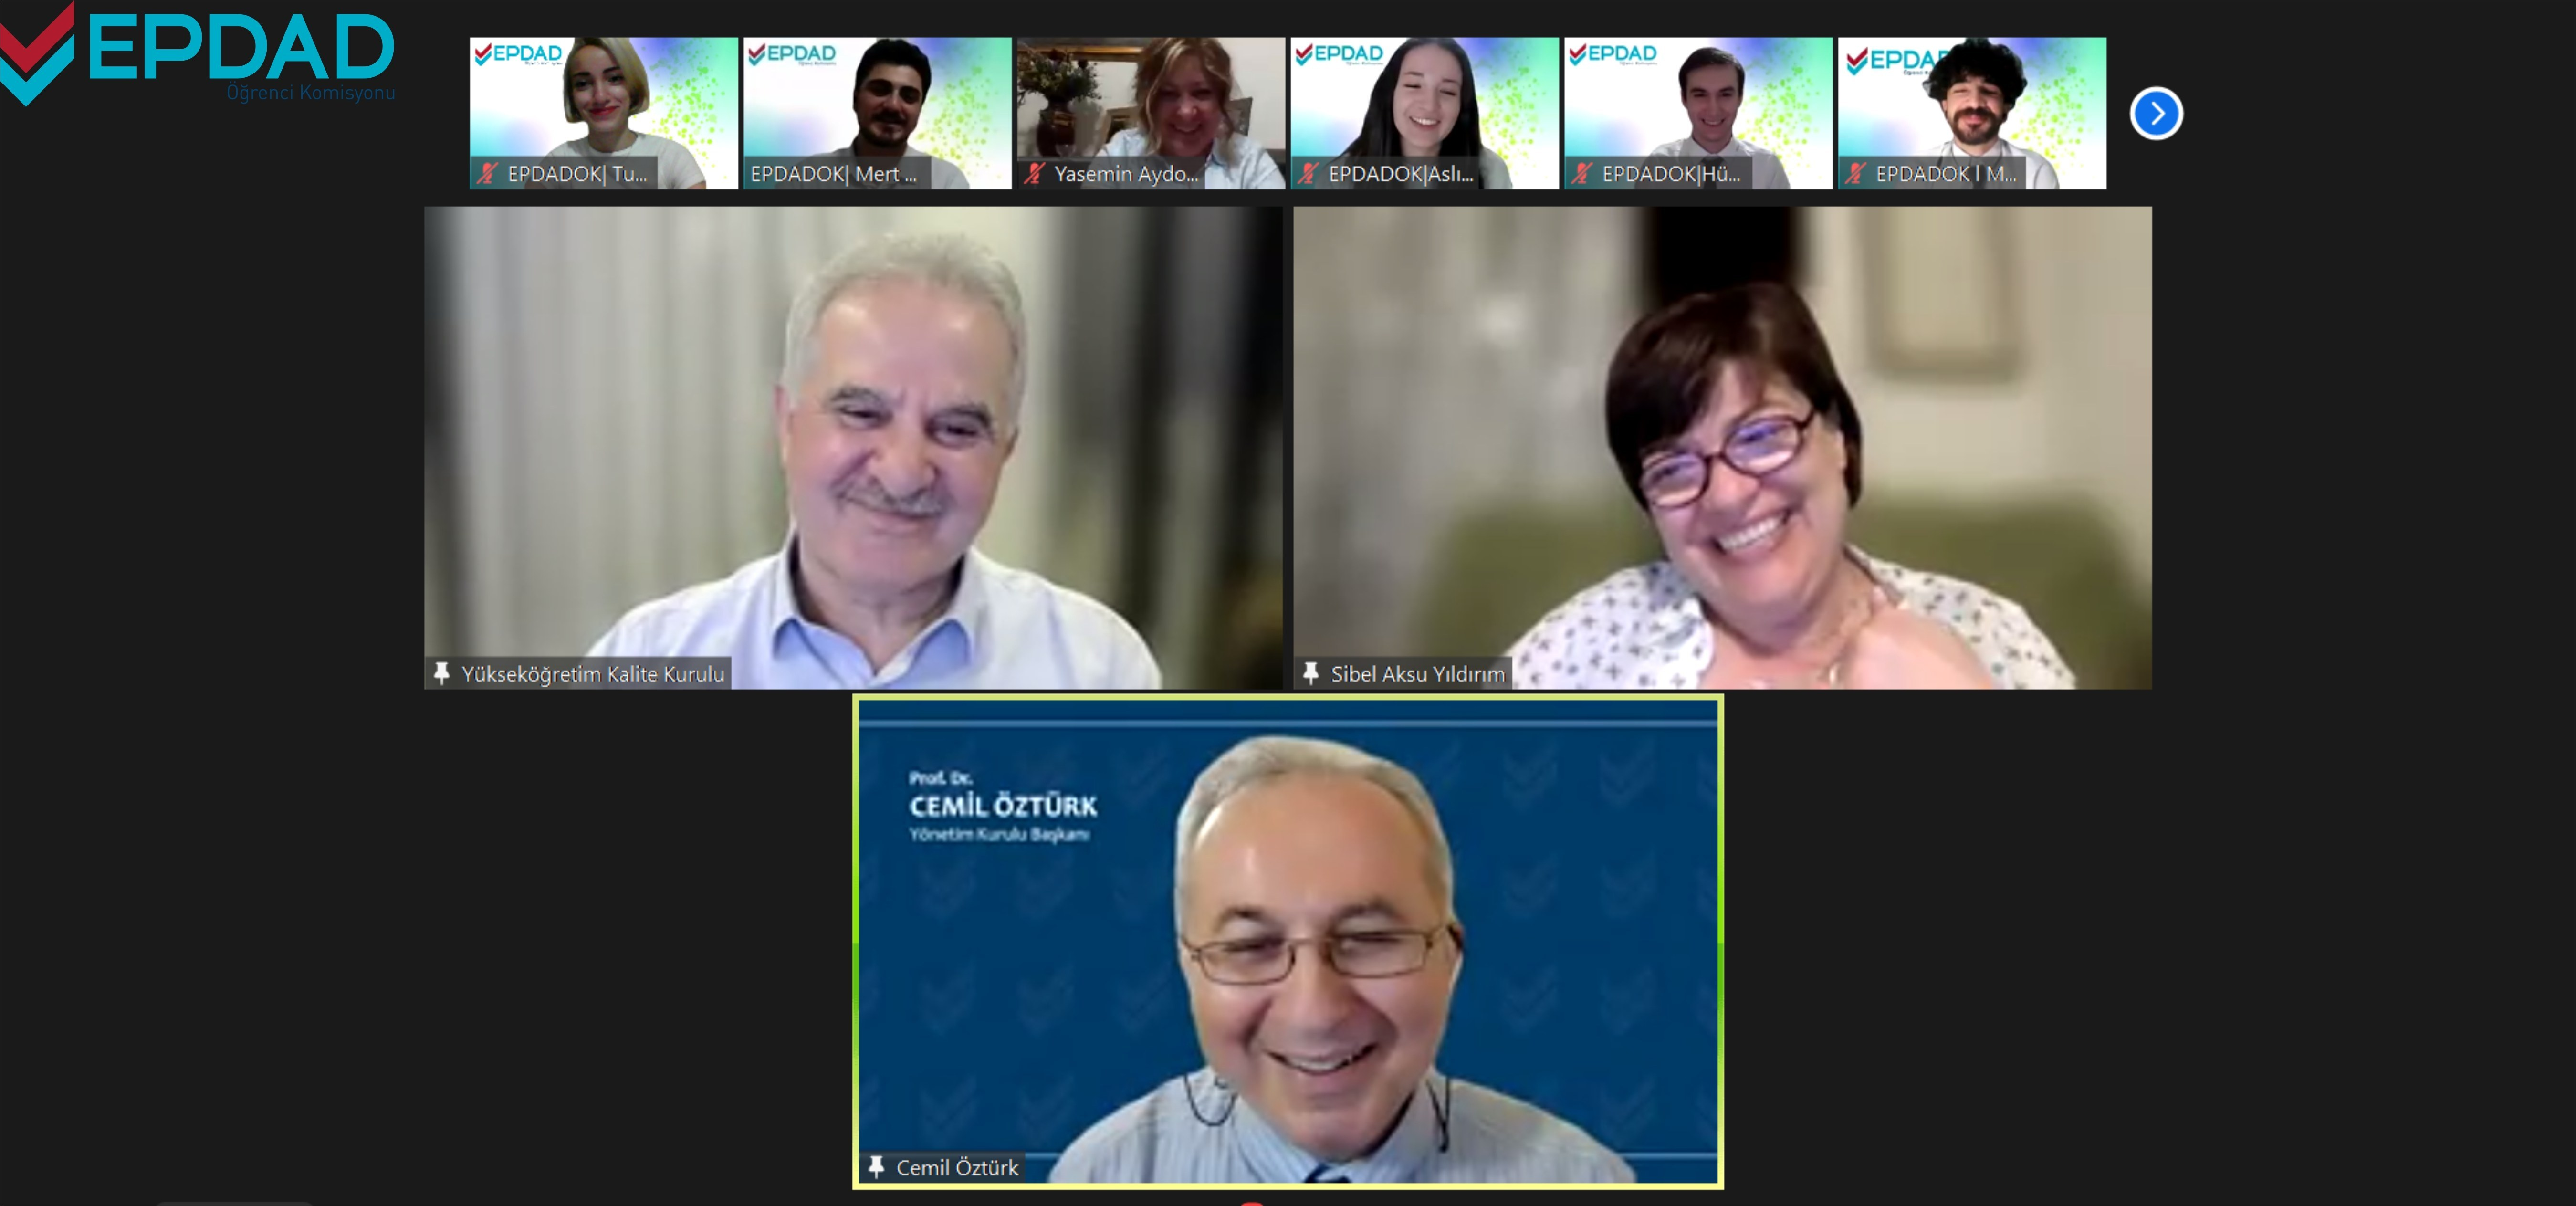 EPDAD Student Commission Held its First Webinar